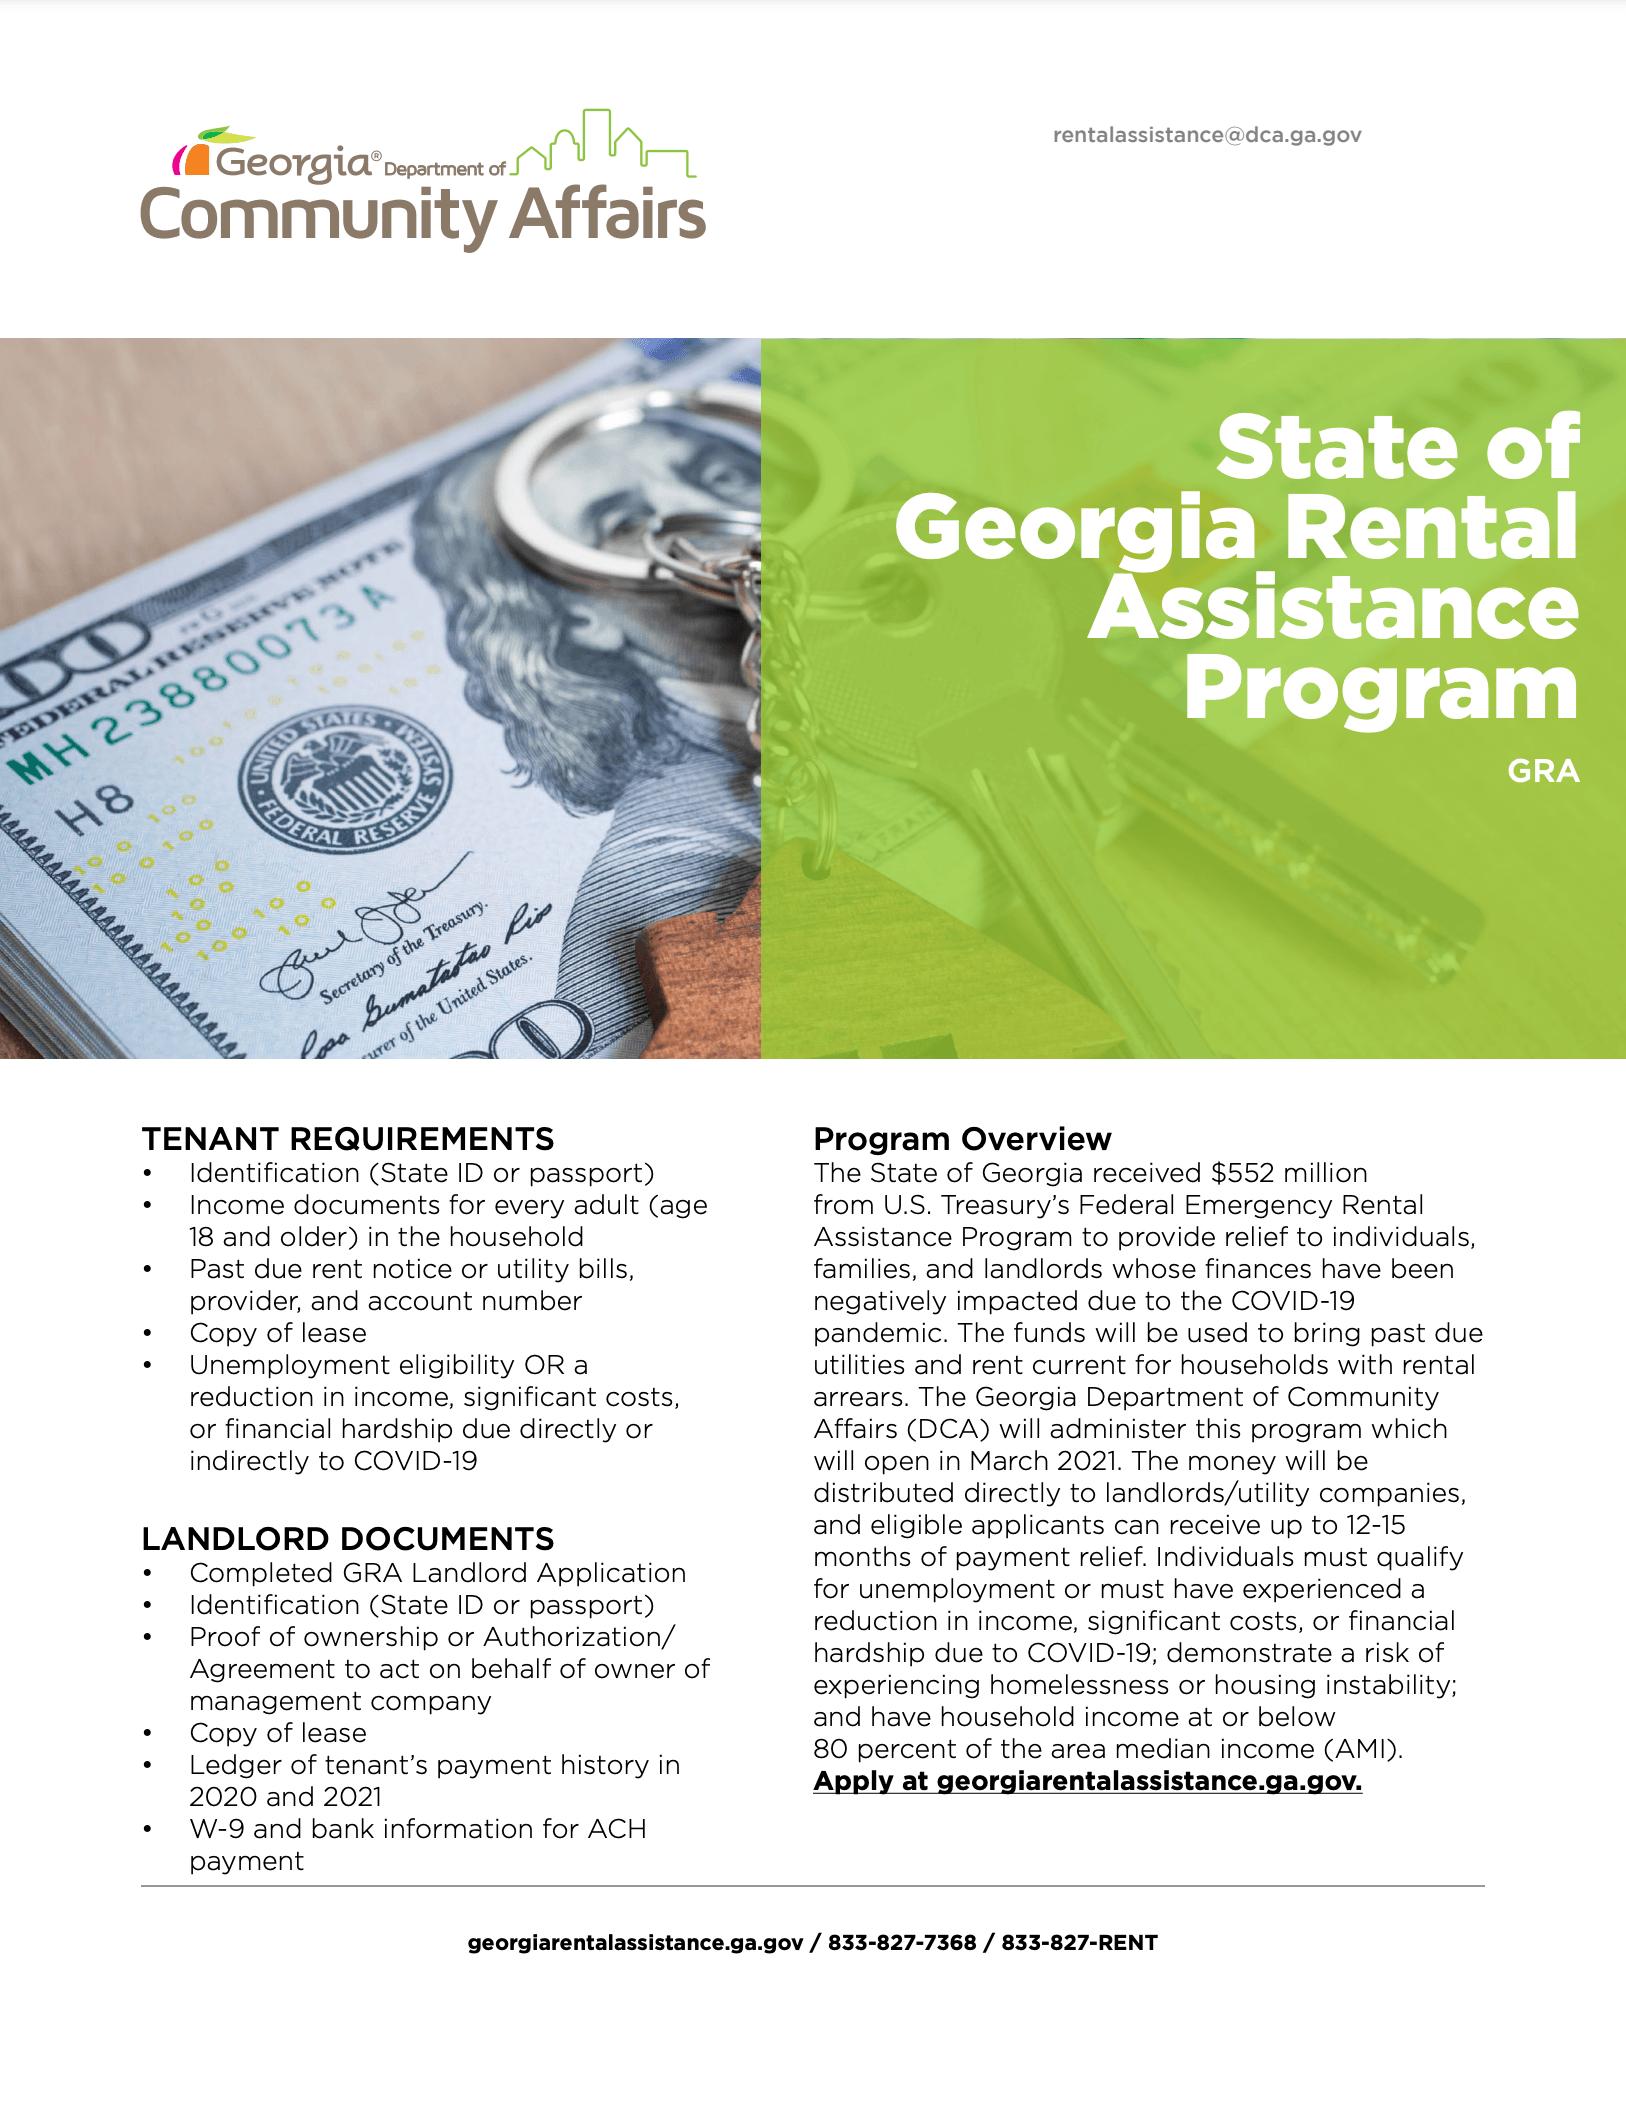 georgia rental assistance program flyer